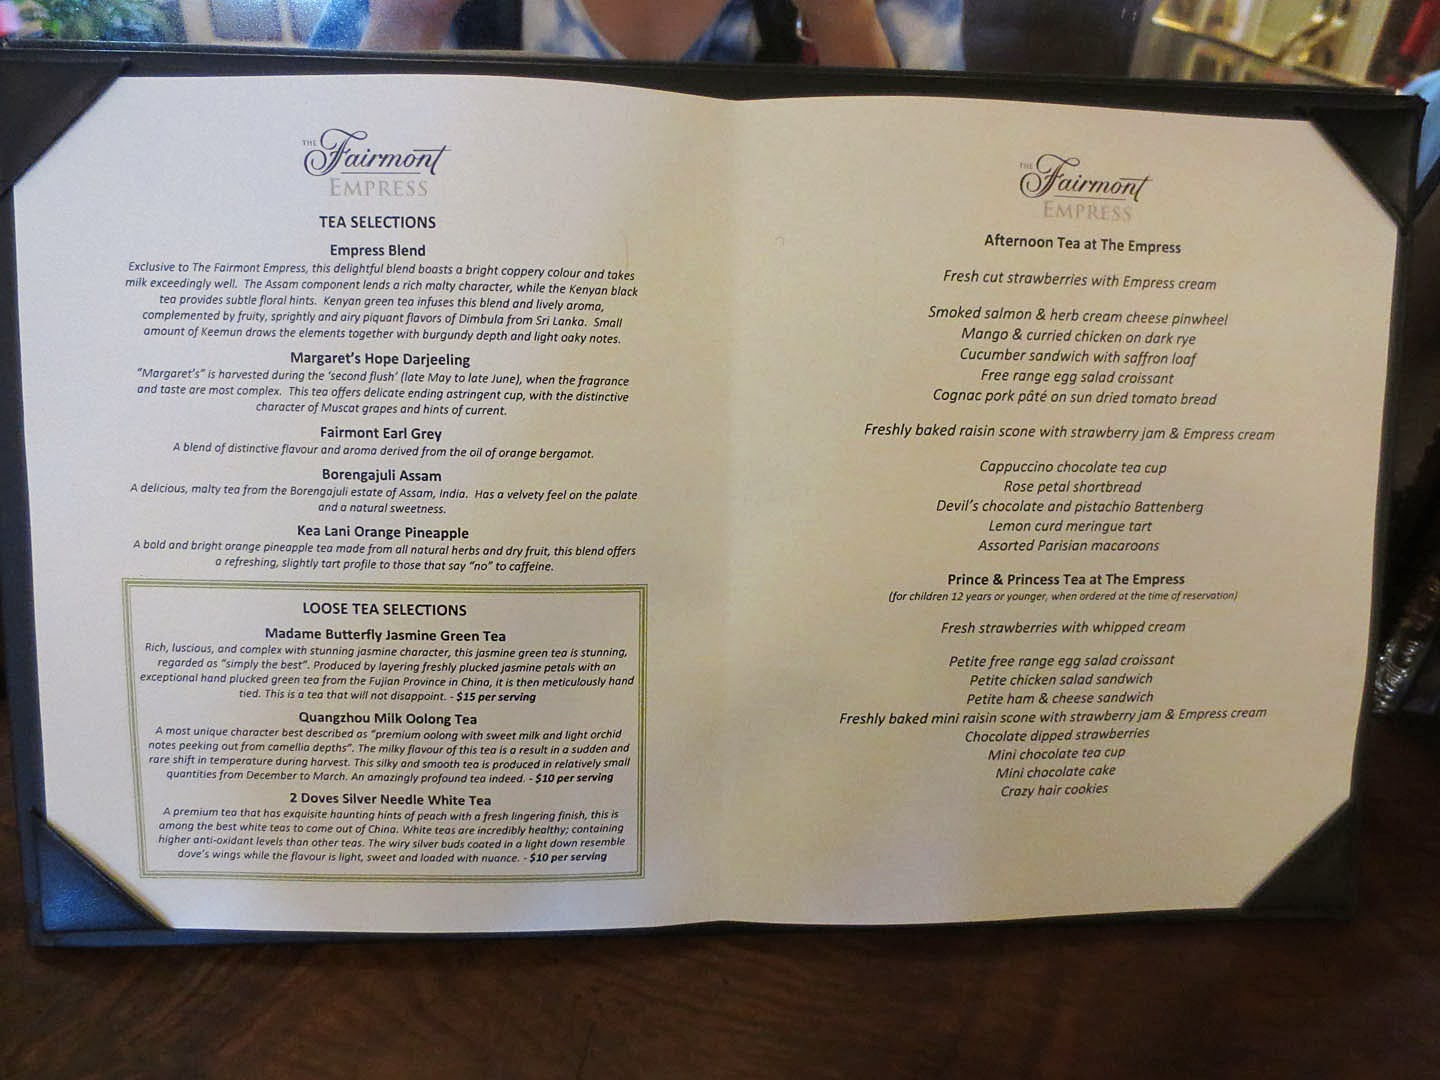 Empress Hotel Afternoon Tea Menu